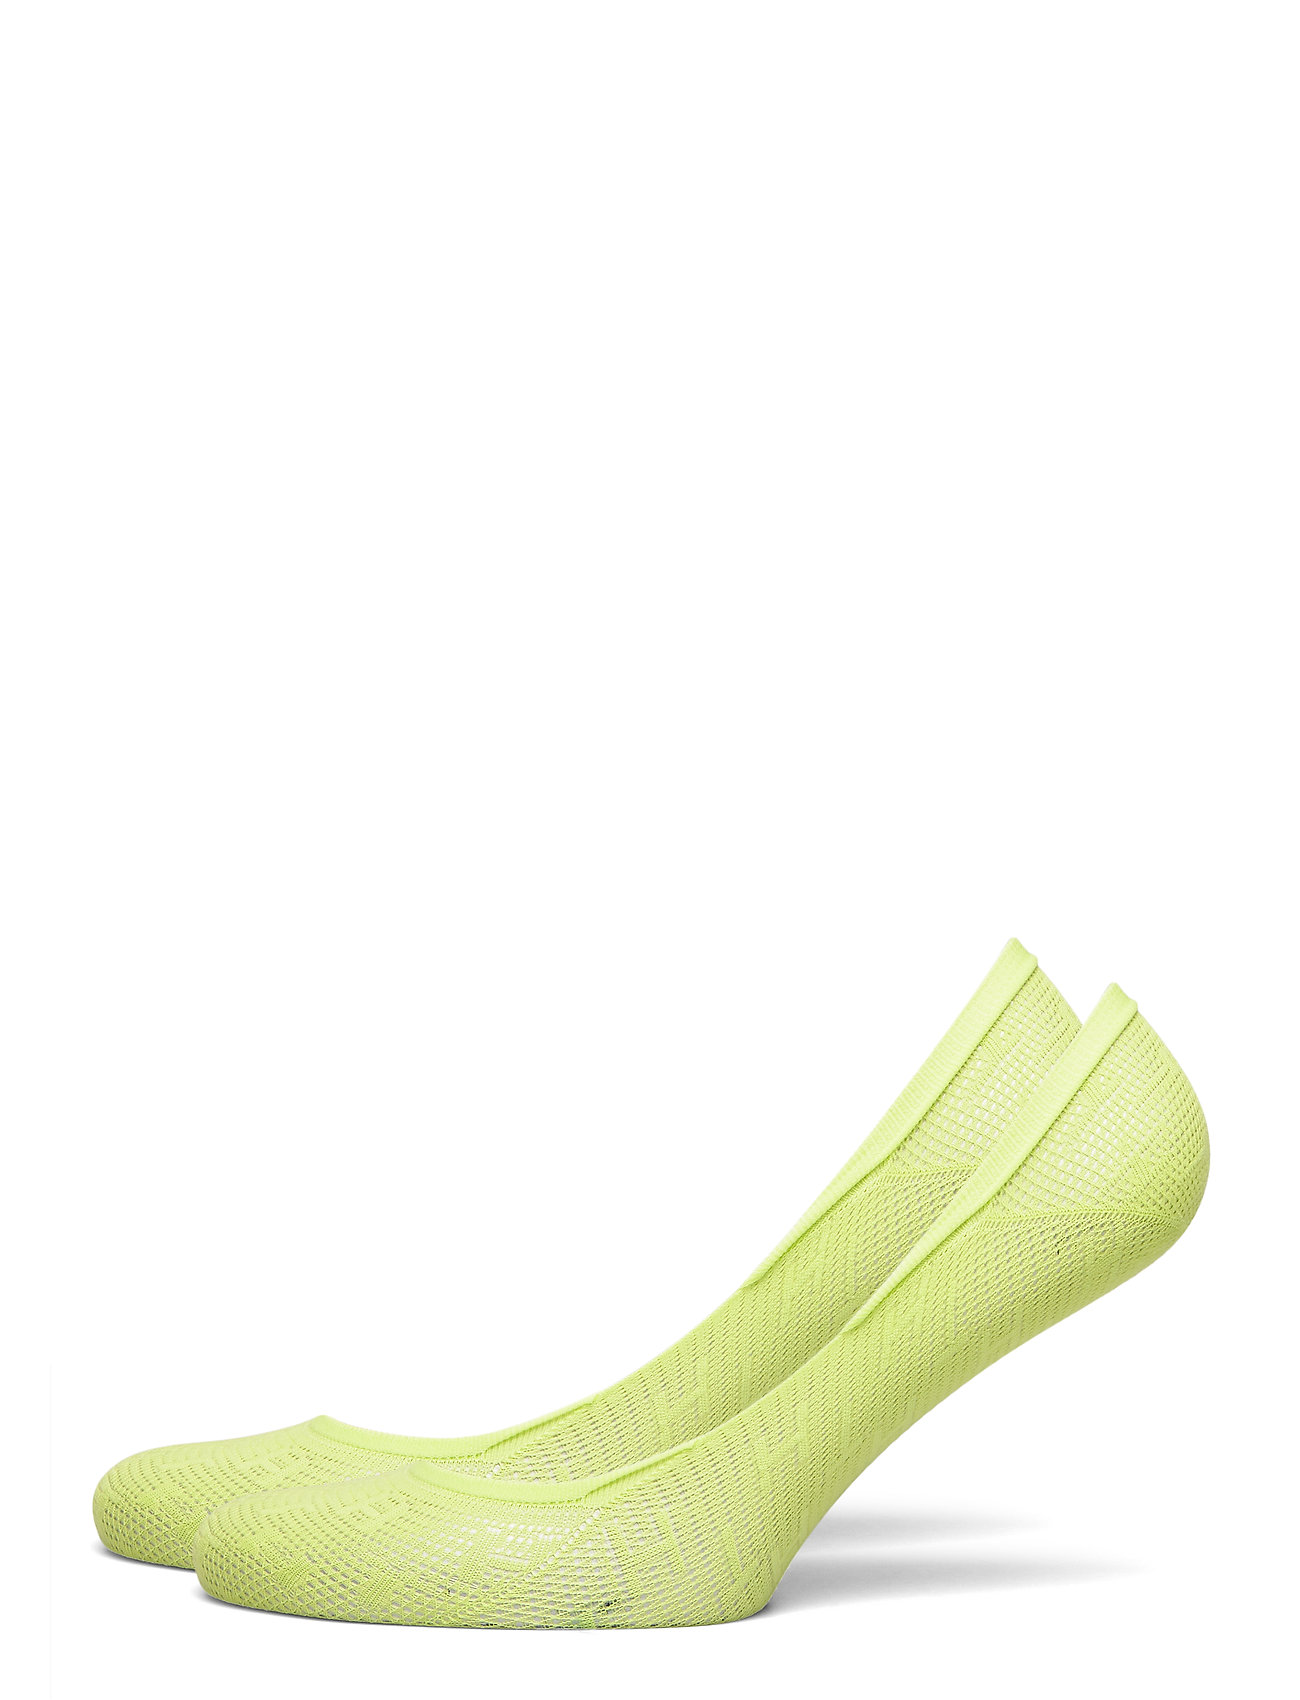 Image of Th Women Footie 2p Th Burn Out Lingerie Socks Footies/Ankle Socks Gul Tommy Hilfiger (3416359983)